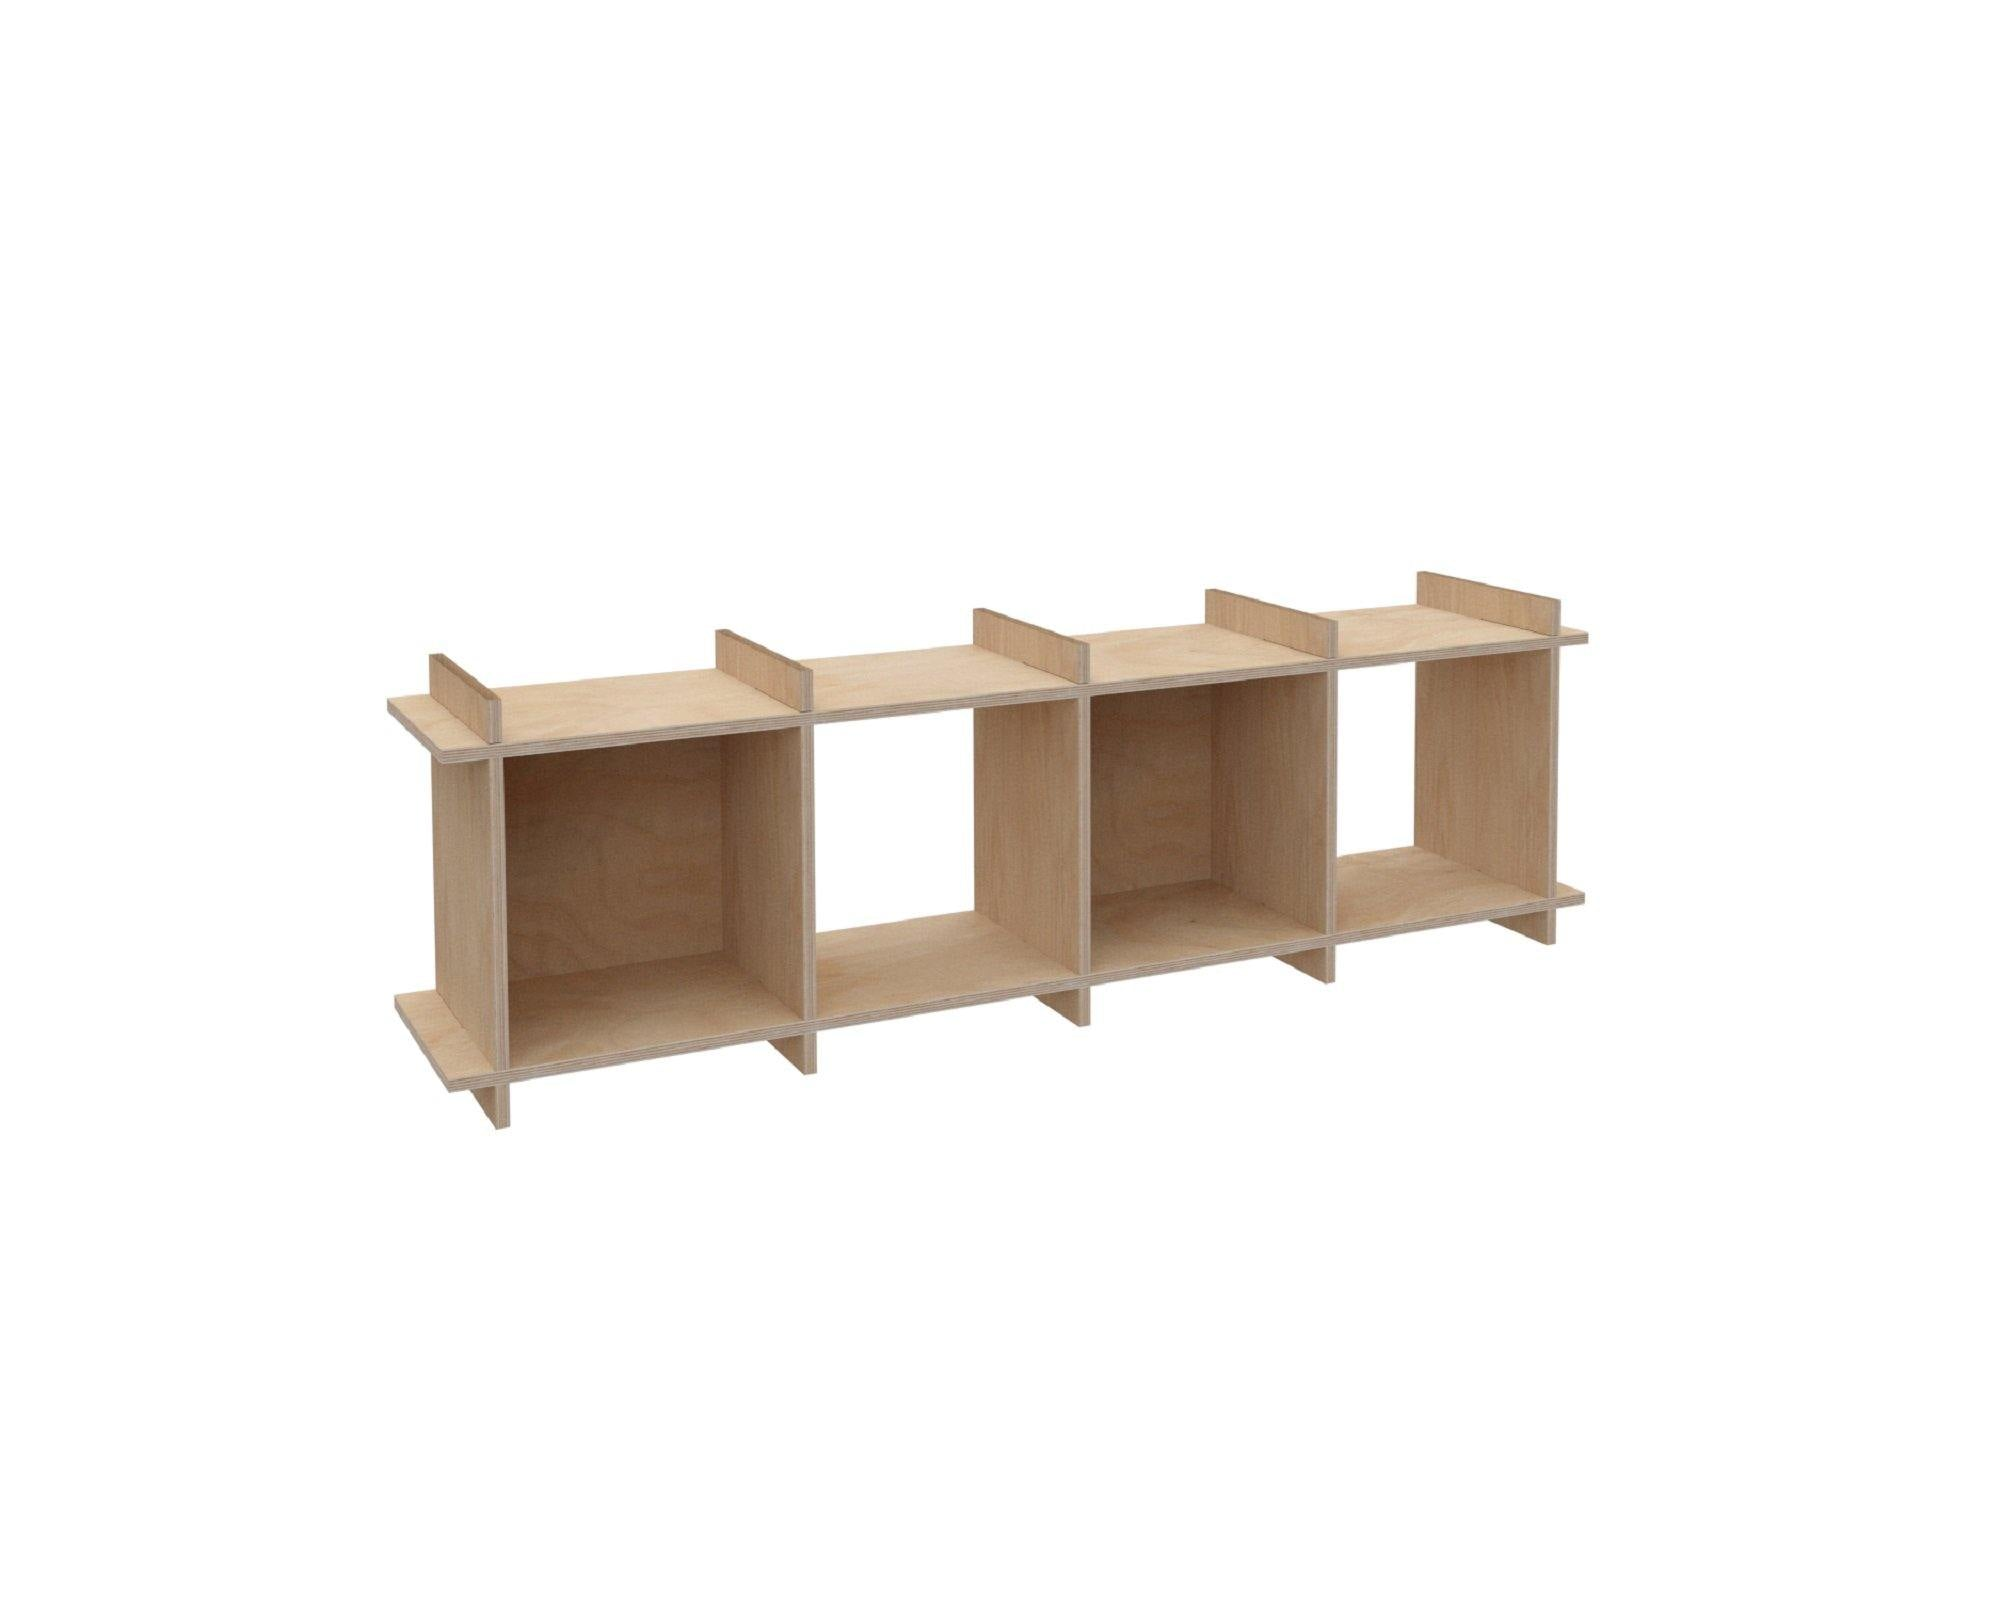 Custom Size Wooden Bookshelf - Plywood Bookcase,  4x1 (4 modules) - 149,5x46x33cm - skleia - custom size plywood furniture - handmade ergonomic ecologic plywood furniture